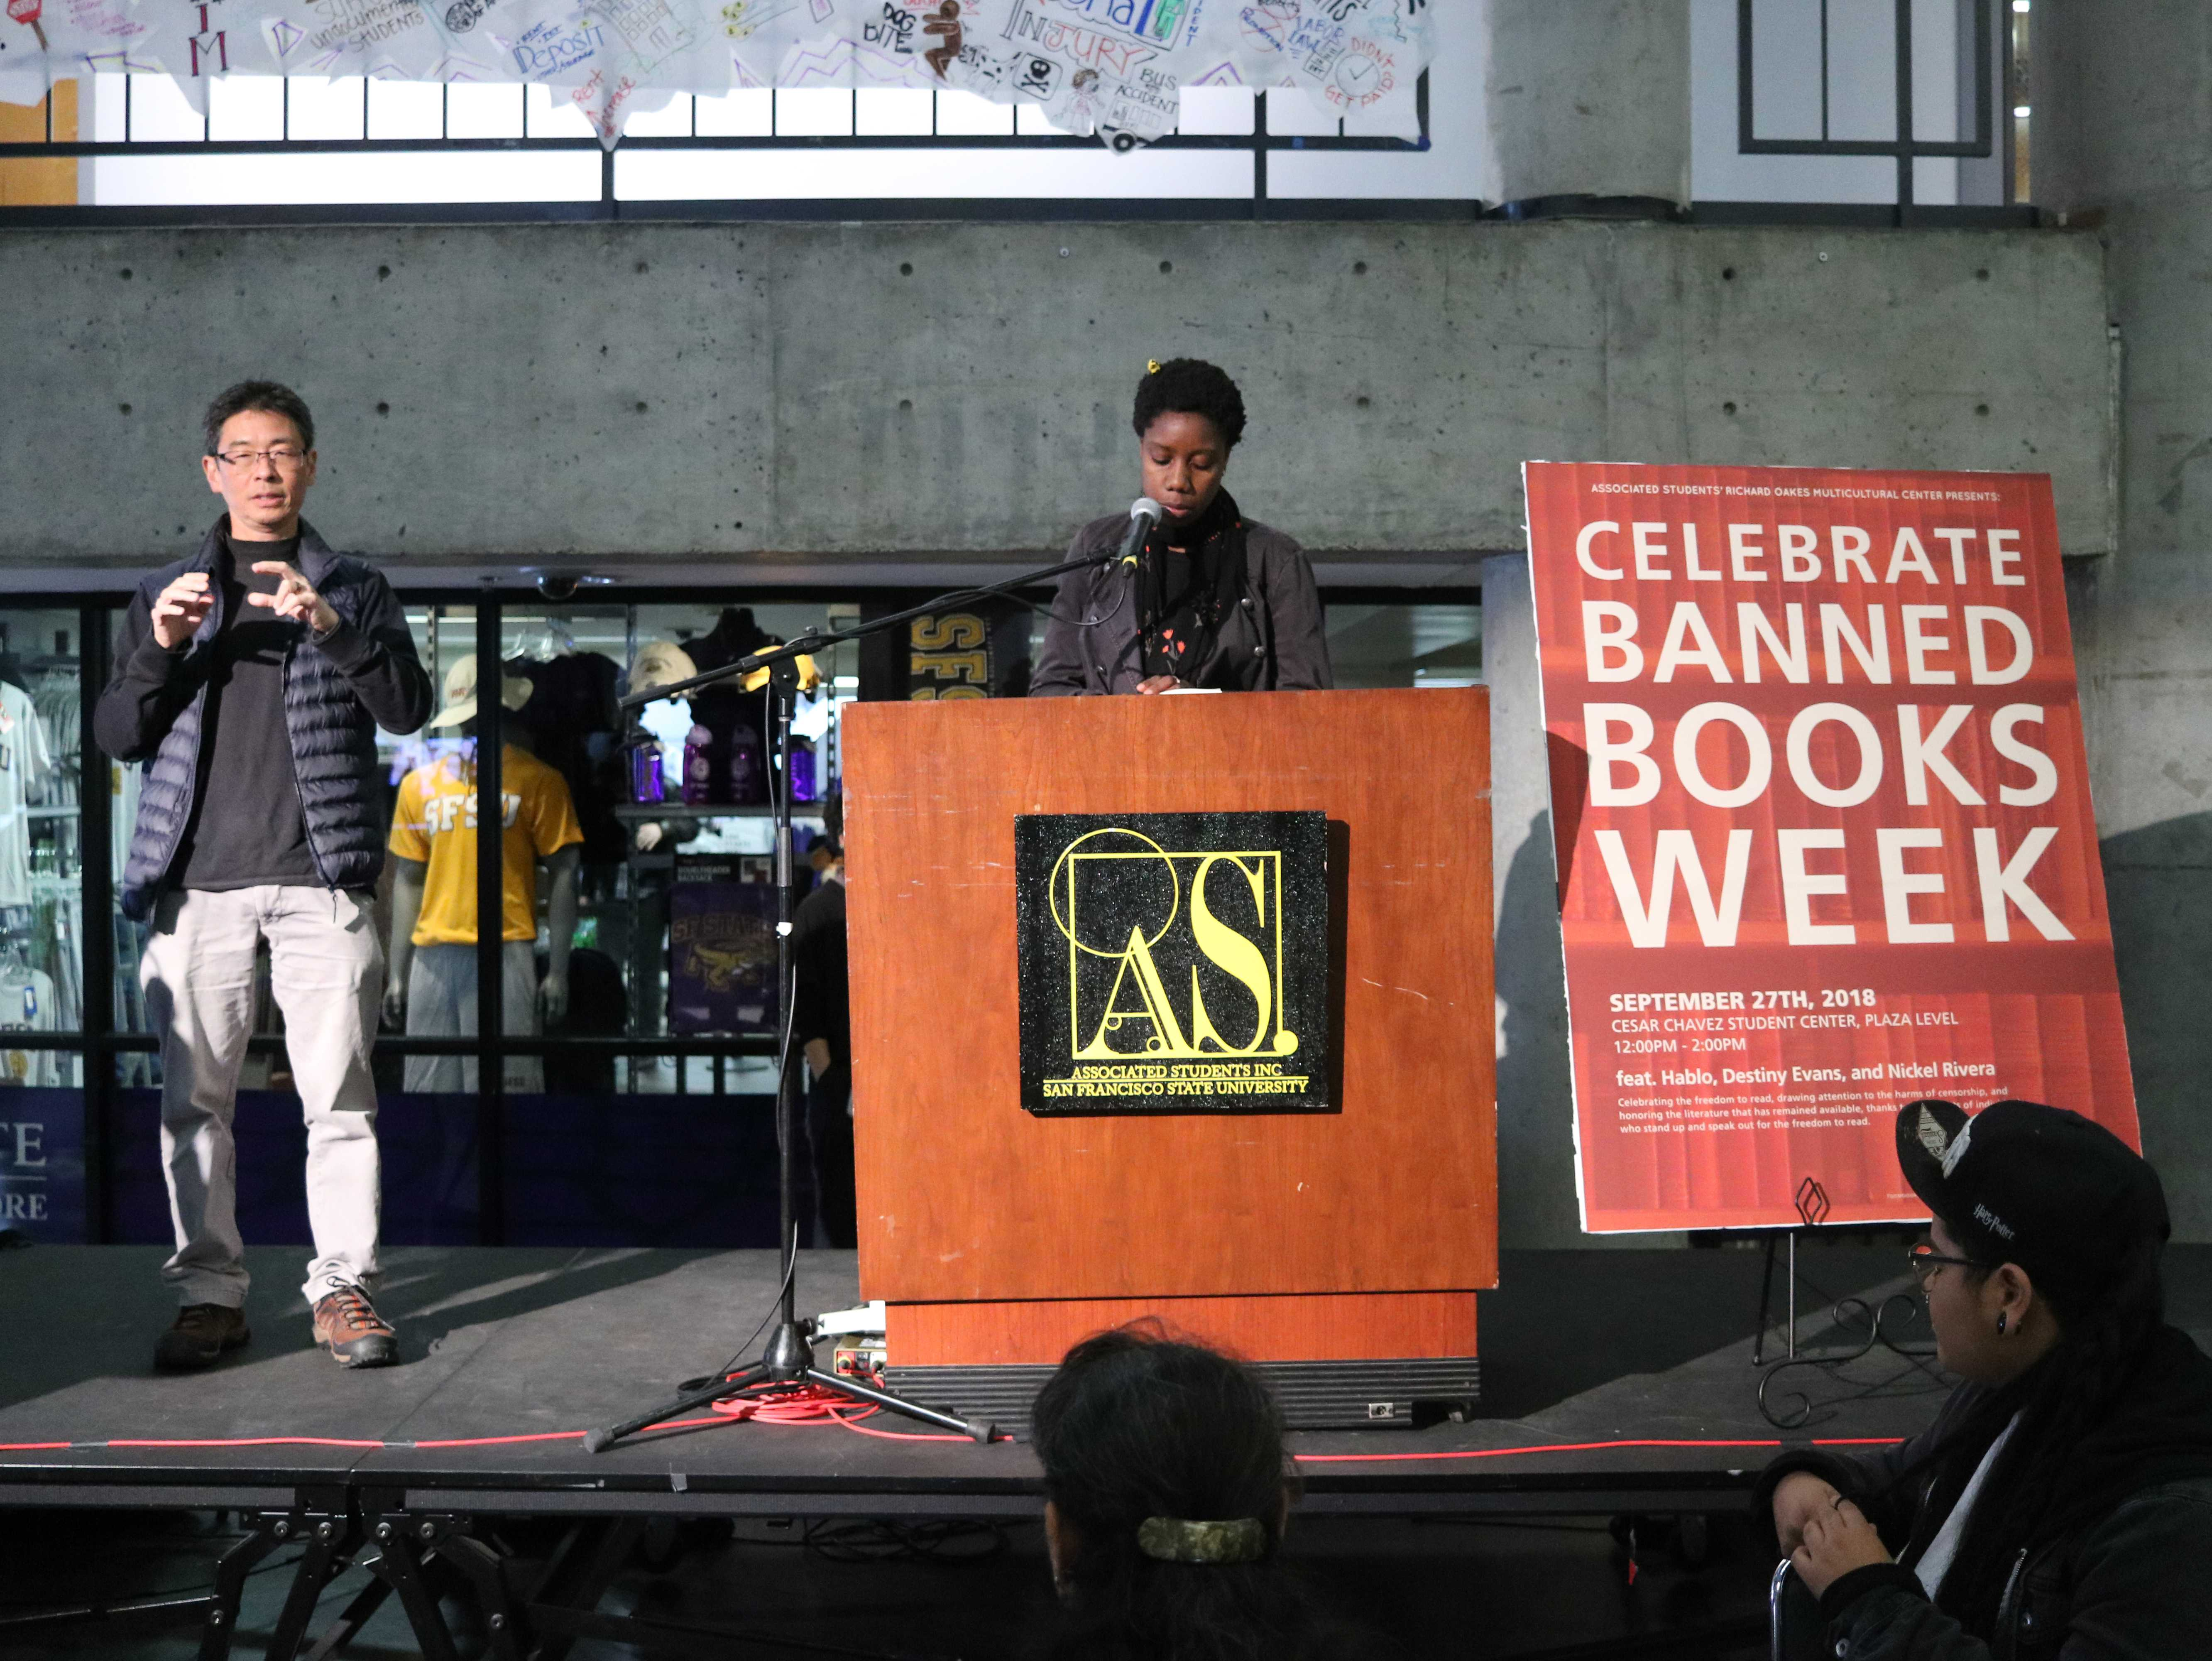 """A student (right) speaks about their favorite poems at the """"Banned Books"""" event held at the Caesar Chavez Student Center on Thursday, Sept. 27th, 2018. (Evan Moses/ Golden Gate Xpress)"""